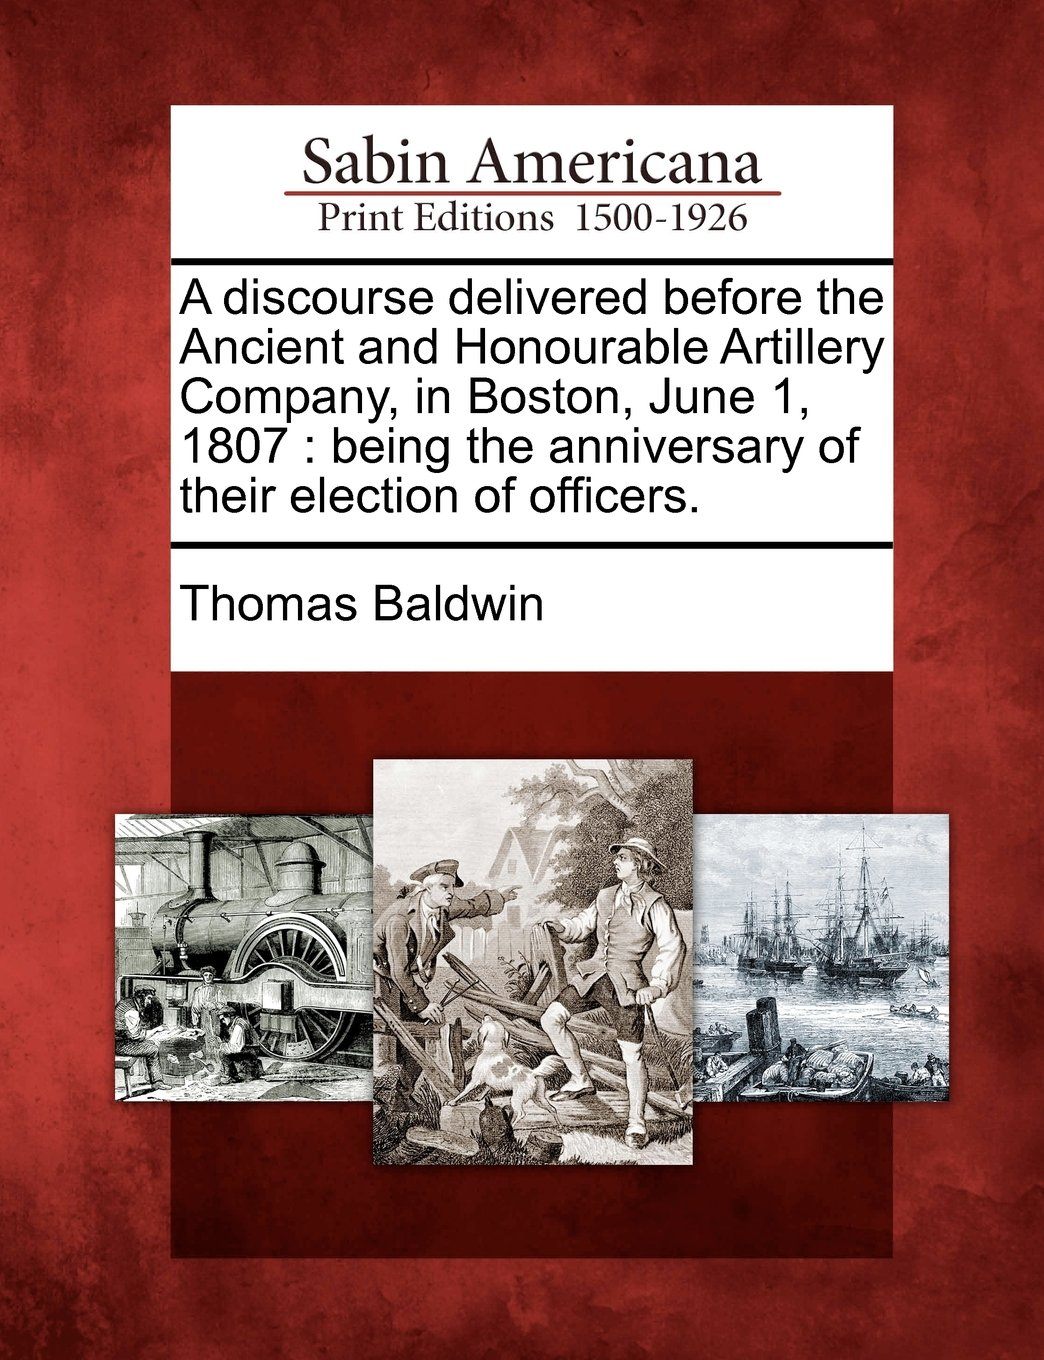 A discourse delivered before the Ancient and Honourable Artillery Company, in Boston, June 1, 1807: being the anniversary of their election of officers. ebook